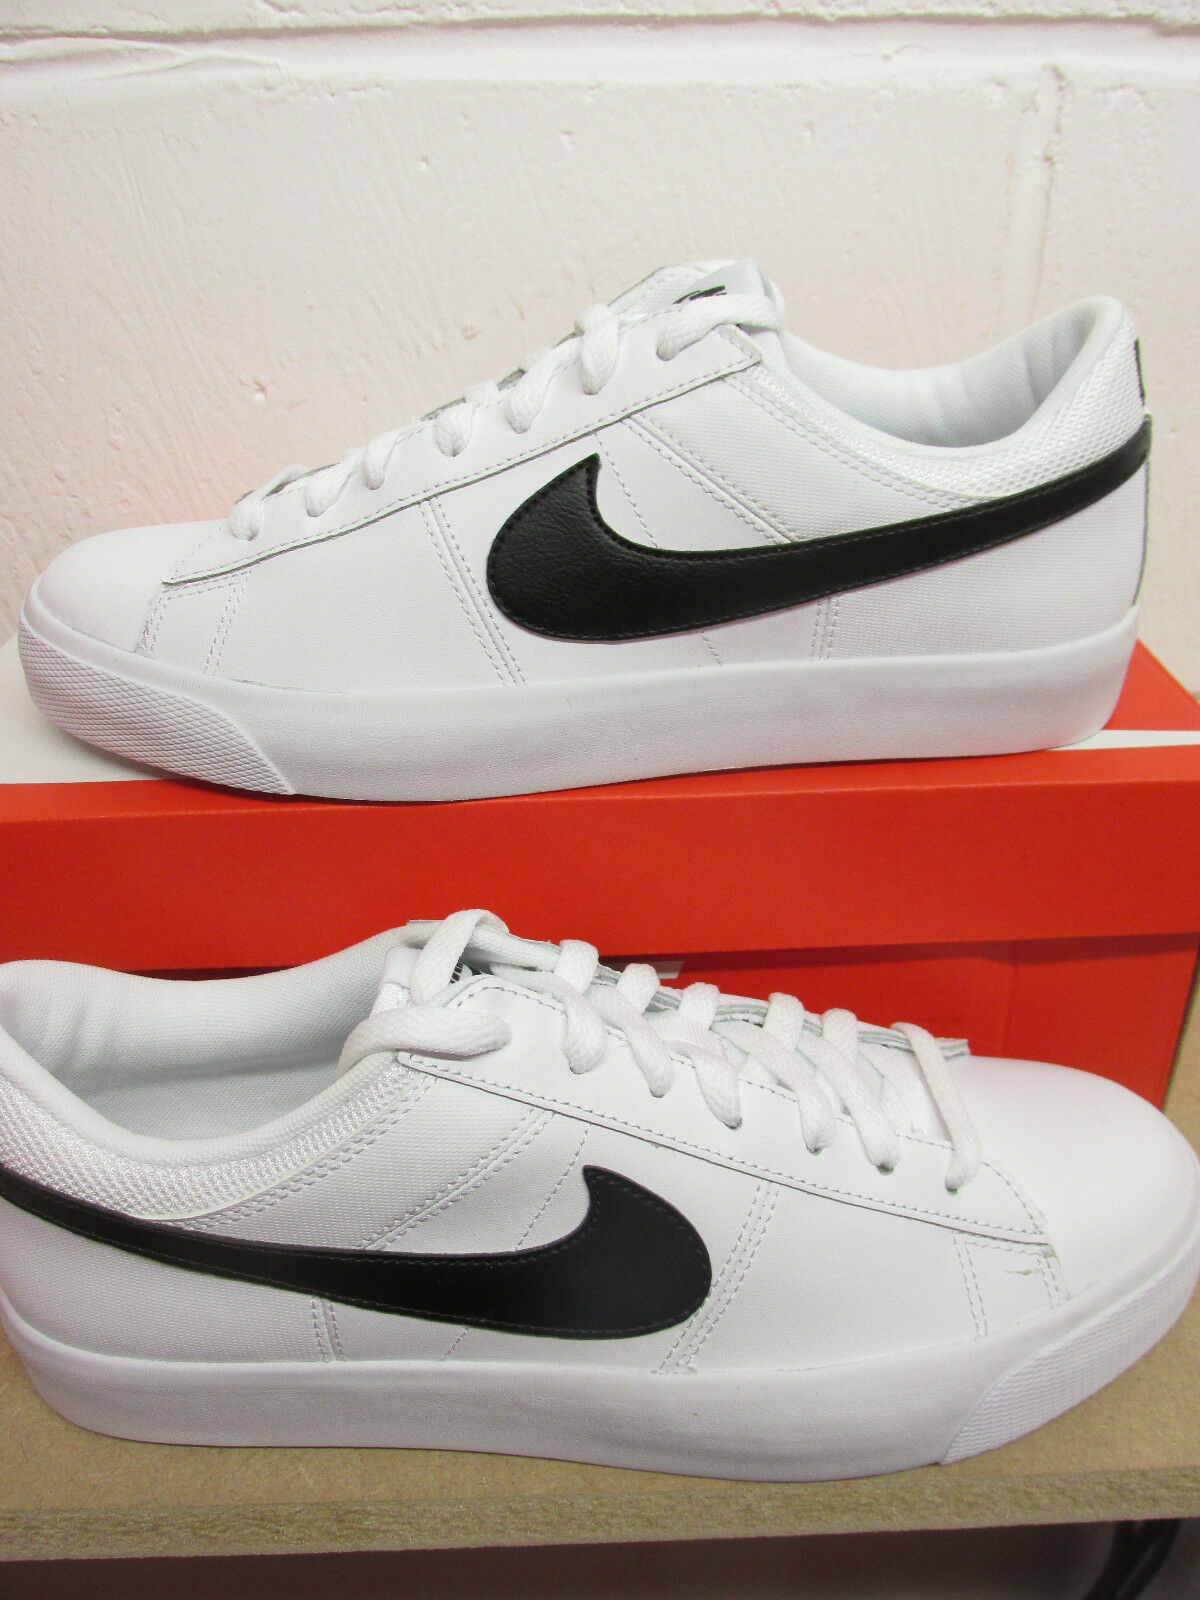 Nike Match Supreme LTR Mens Trainers 631656 101 Sneakers Shoes